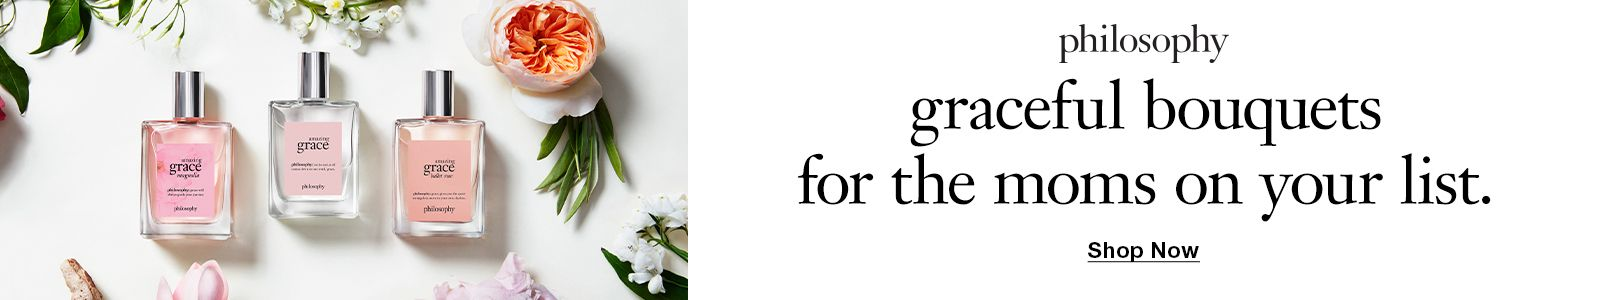 Philosophy, graceful bouquets for the moms on your list, Shop Now